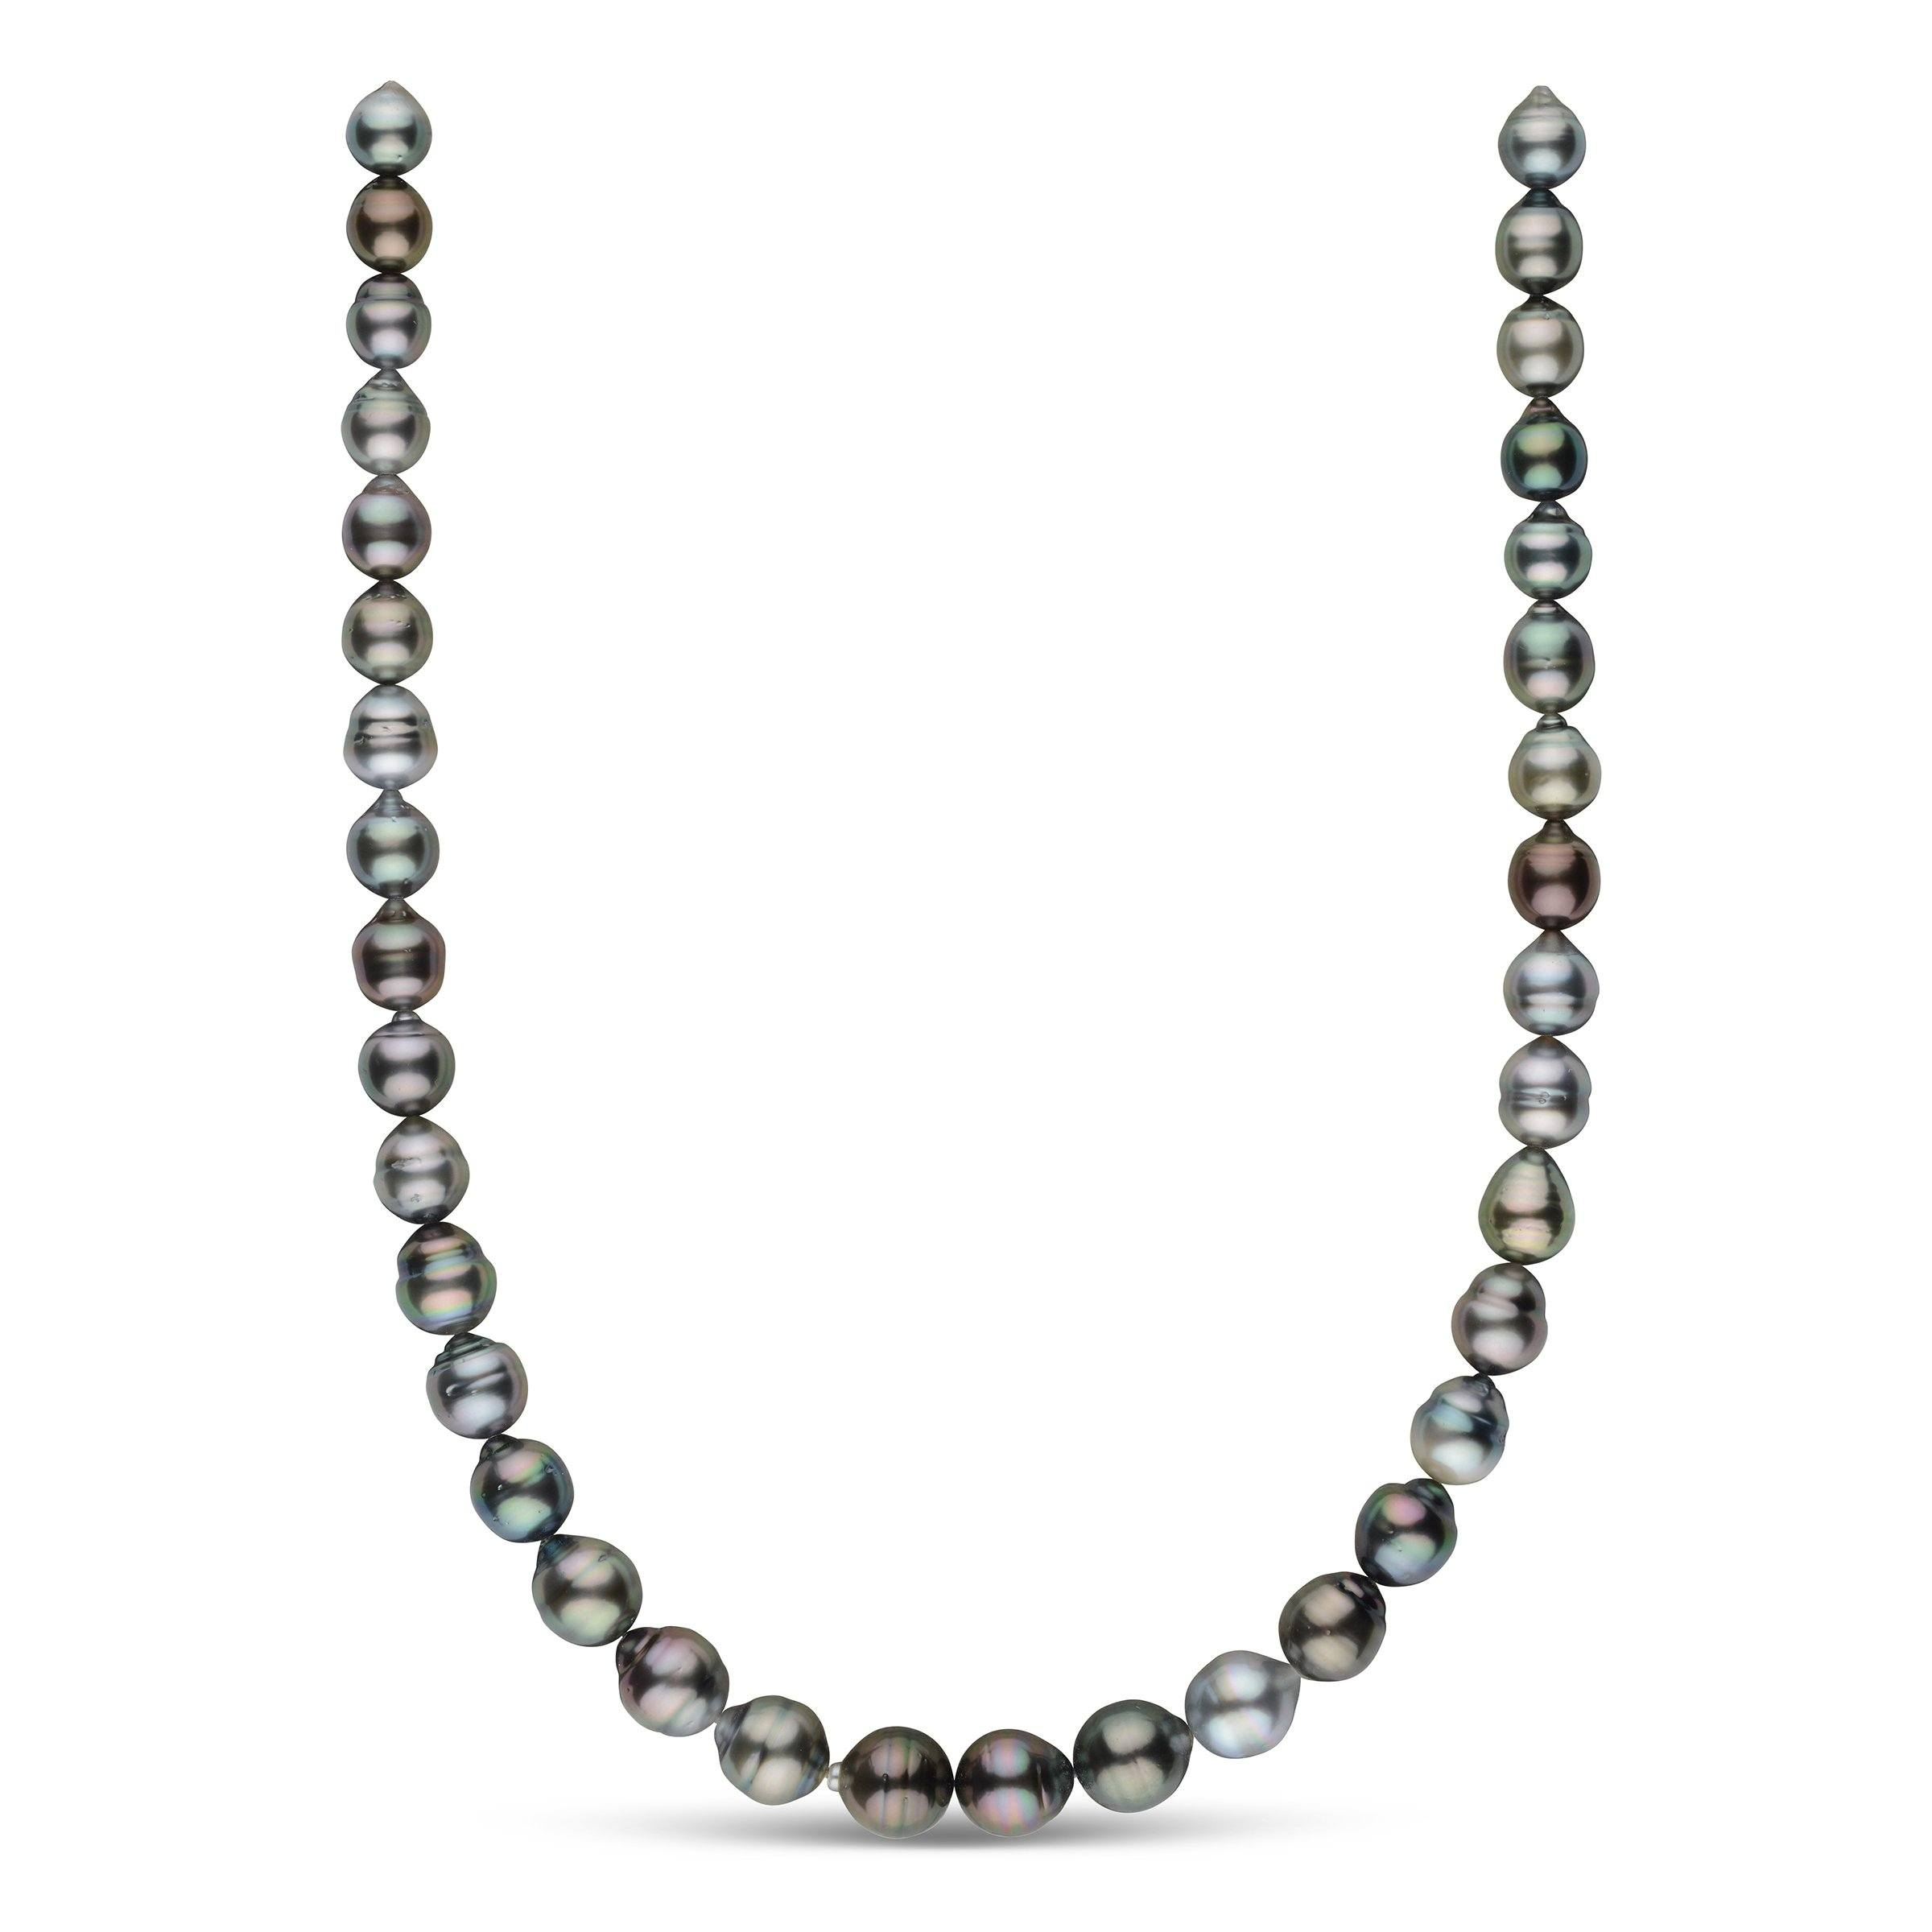 9.0-11.5 mm AA+/AAA Tahitian Baroque Pearl Necklace